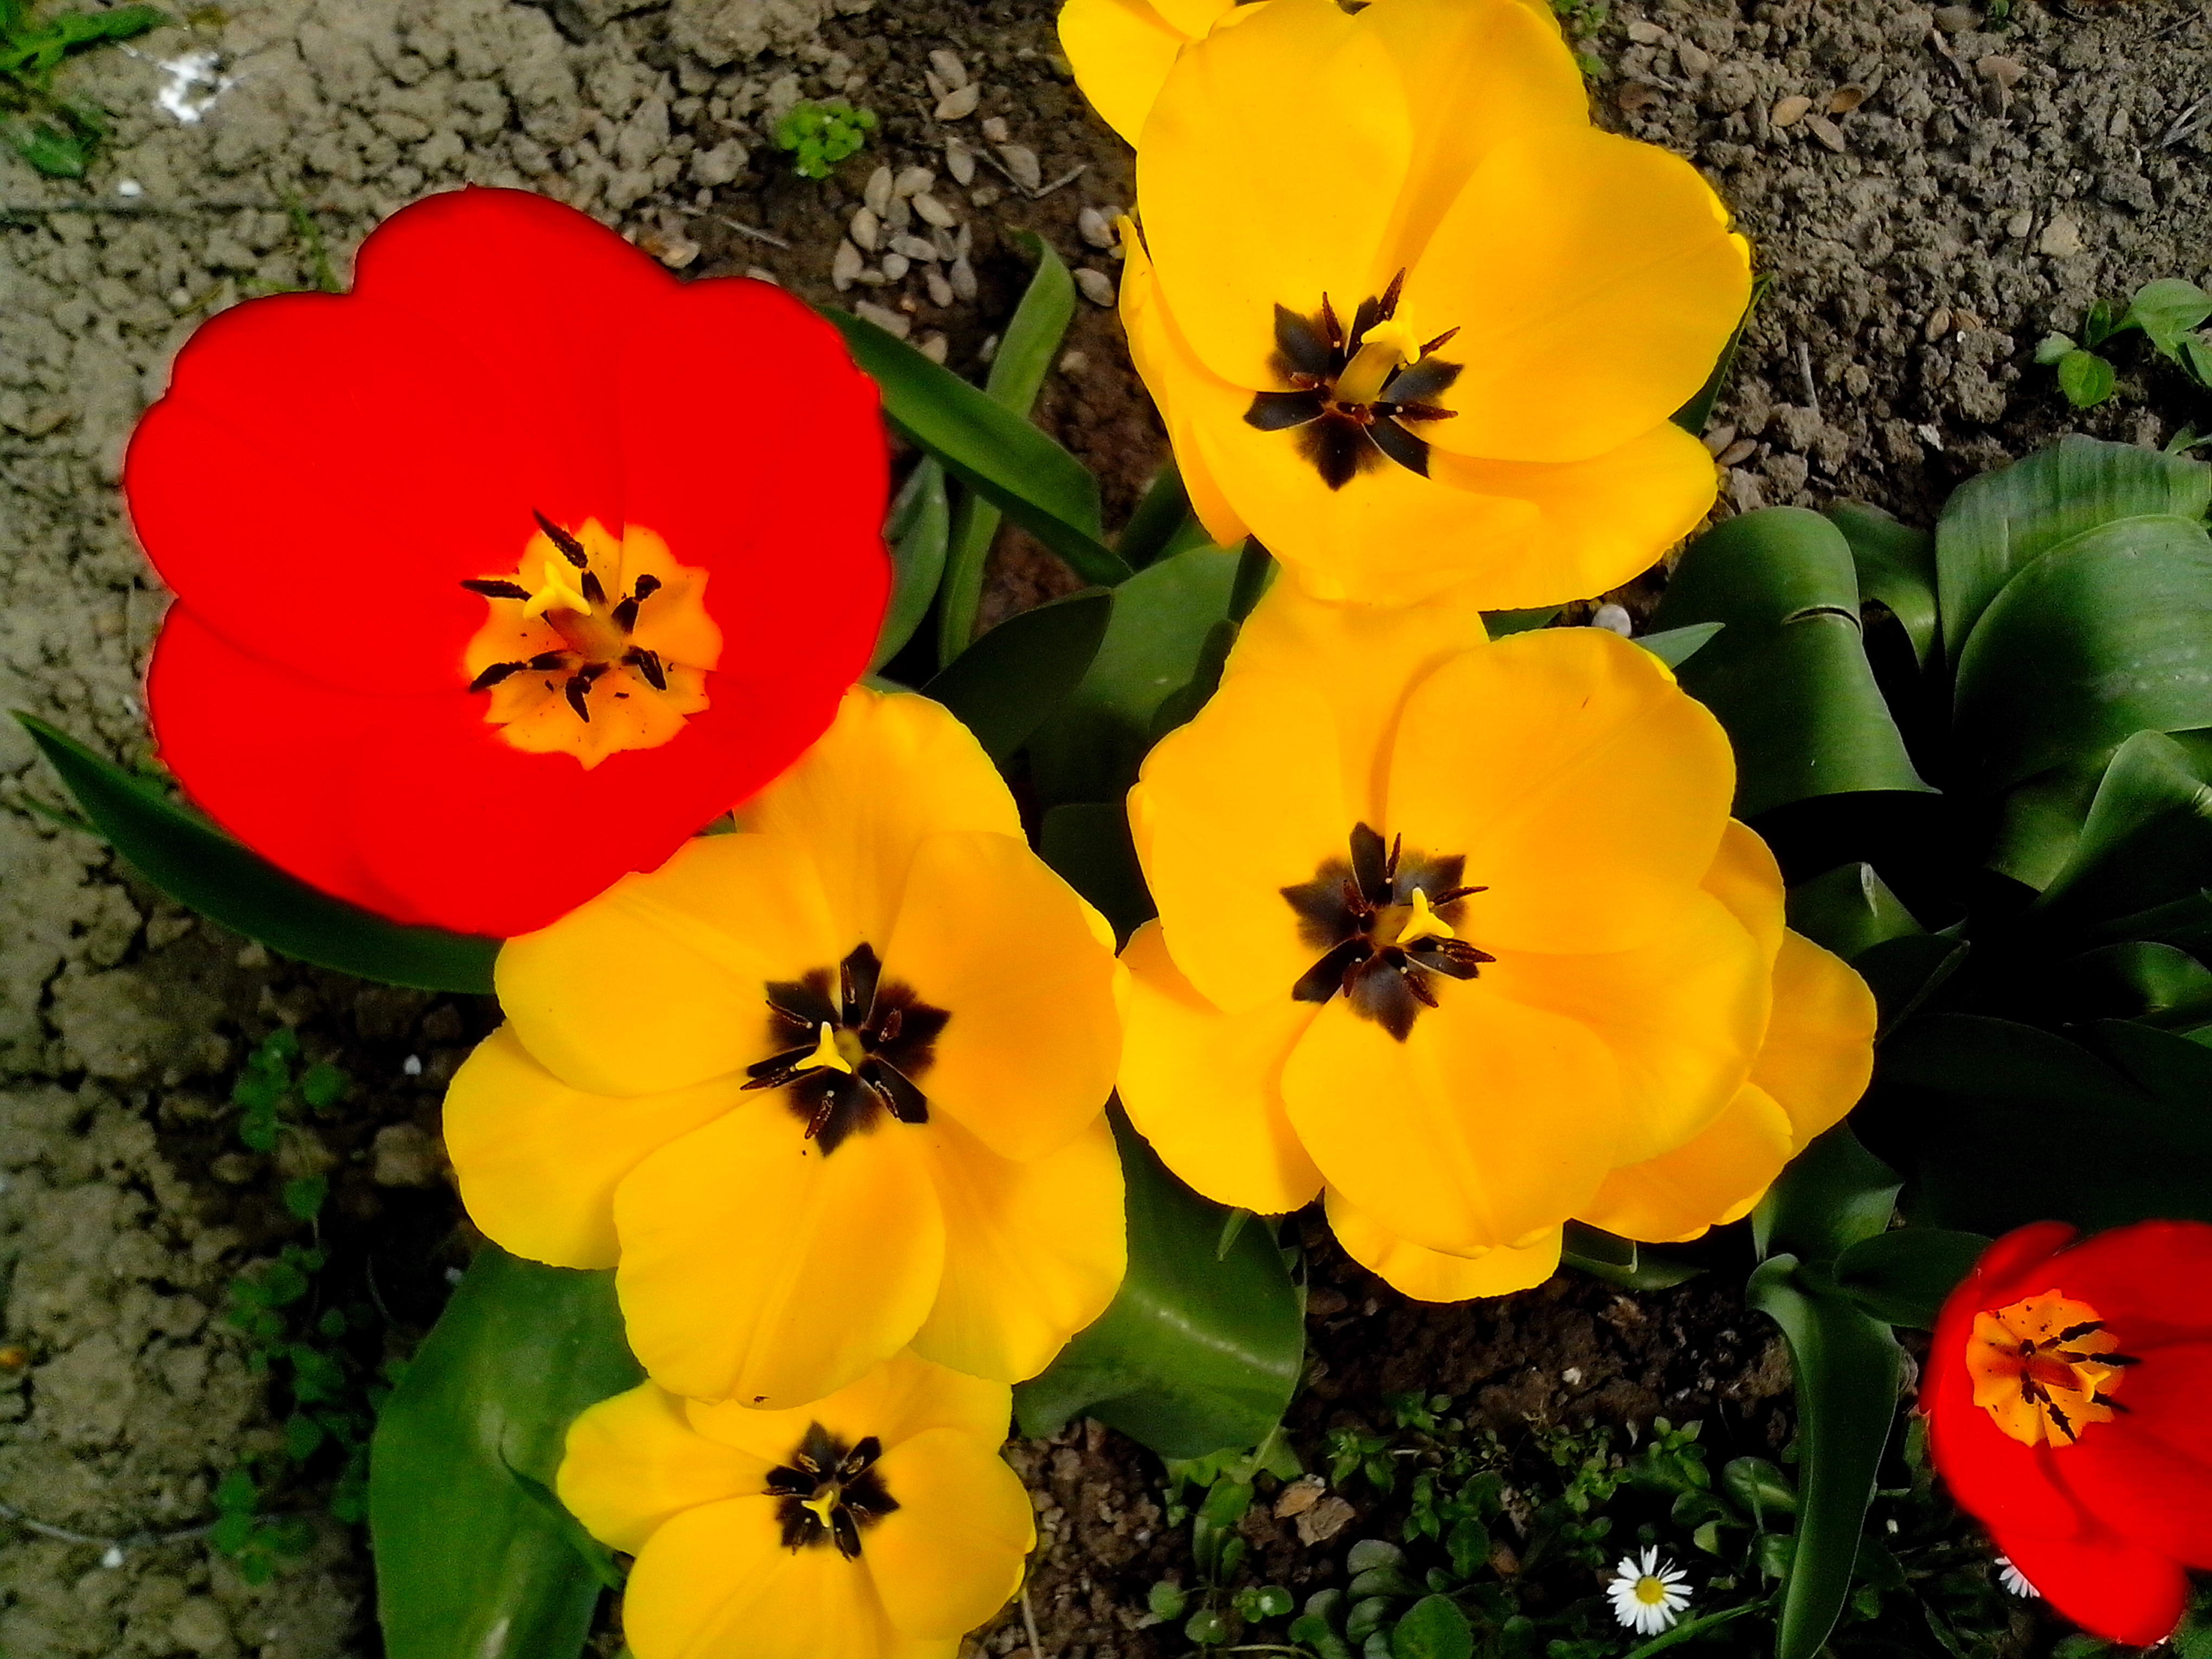 Free picture red tulip flower yellow flowers garden red tulip flower yellow flowers garden mightylinksfo